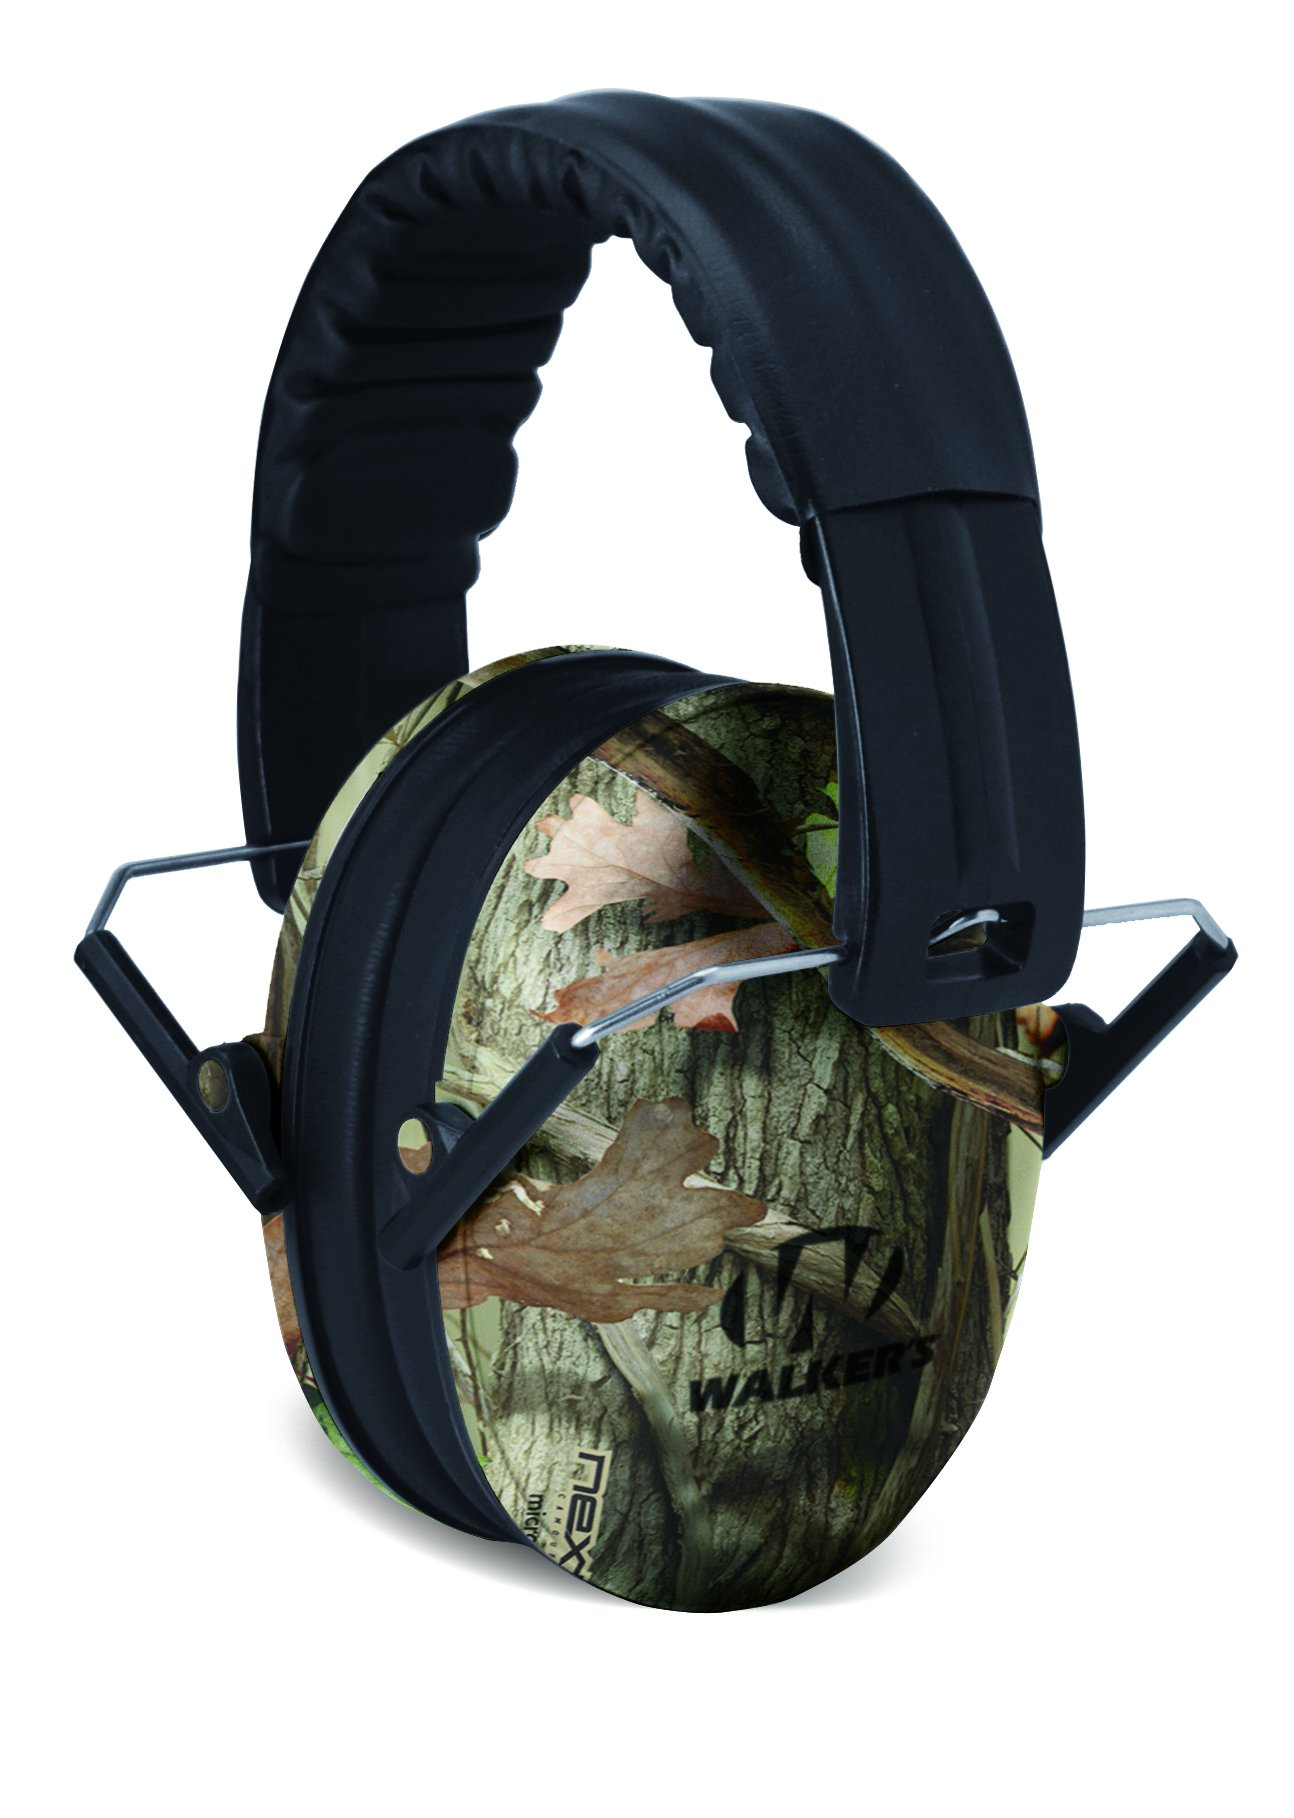 Walker's Children-Baby & Kids Hearing Protection/Folding Ear Muff, Camo by Walker's Game Ear